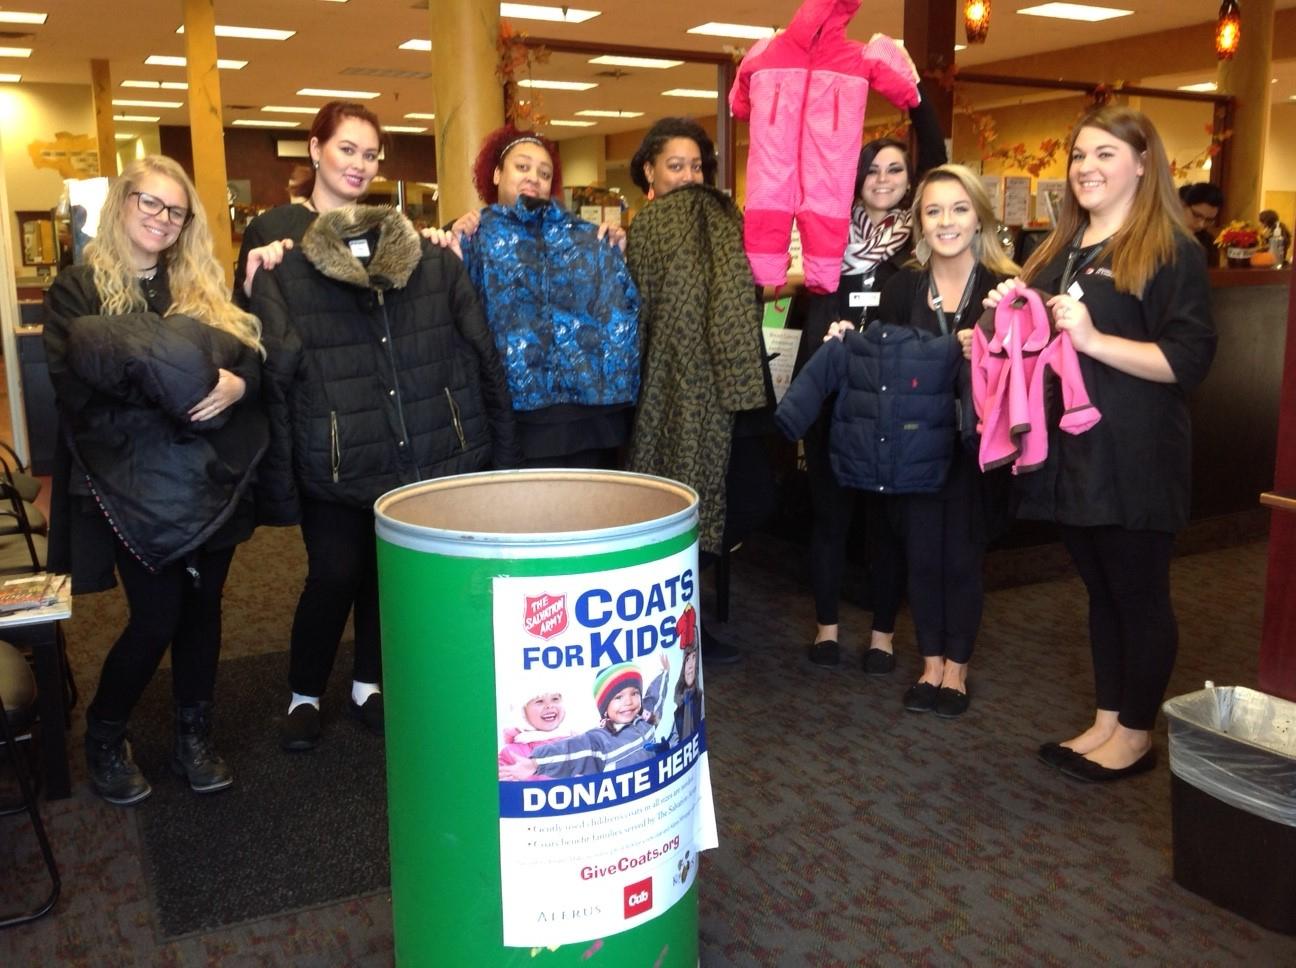 Minnesota School of Cosmetology (MSC) Collects Coats for Kids